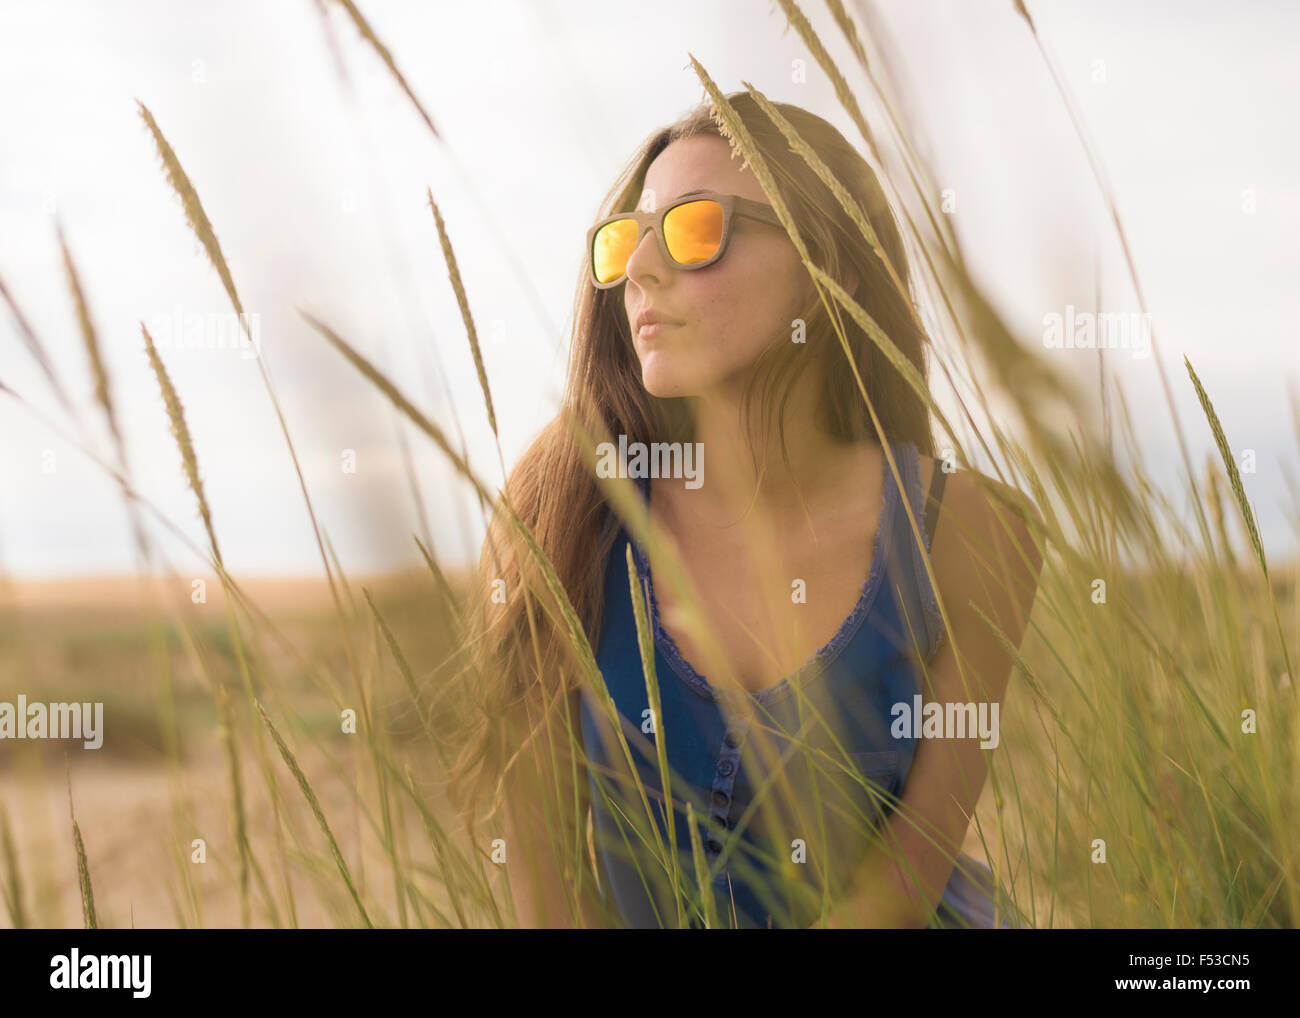 Young woman feeling blue. Stock Photo